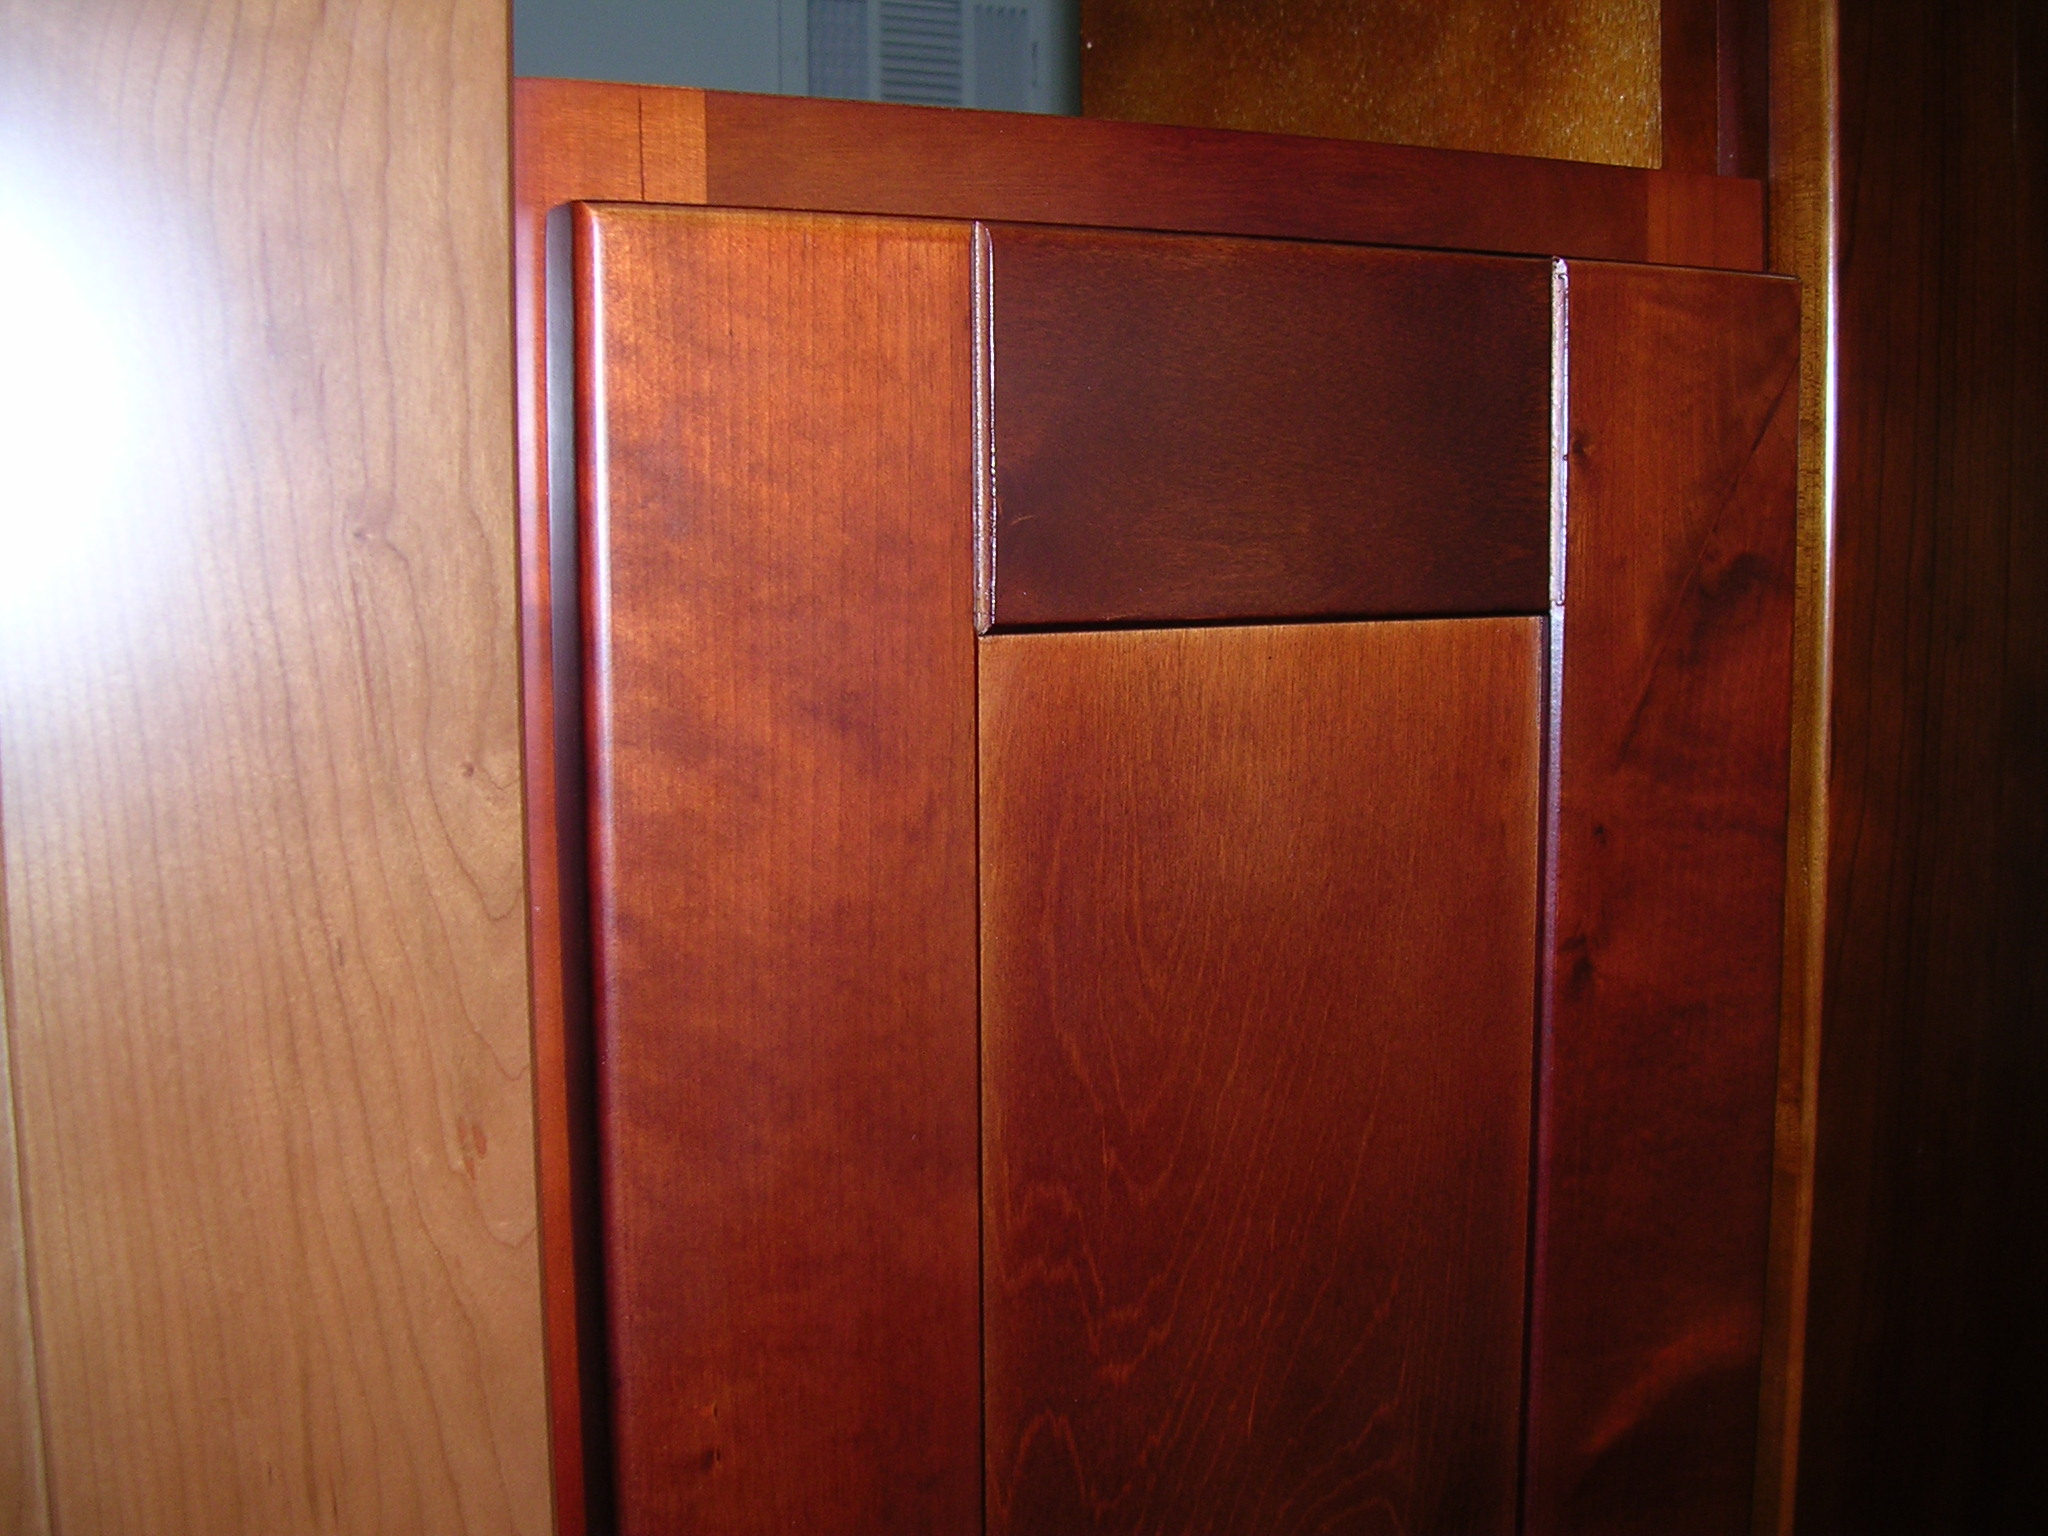 Cherry colored Birch Shaker Kitchen Cabinets Photo Album